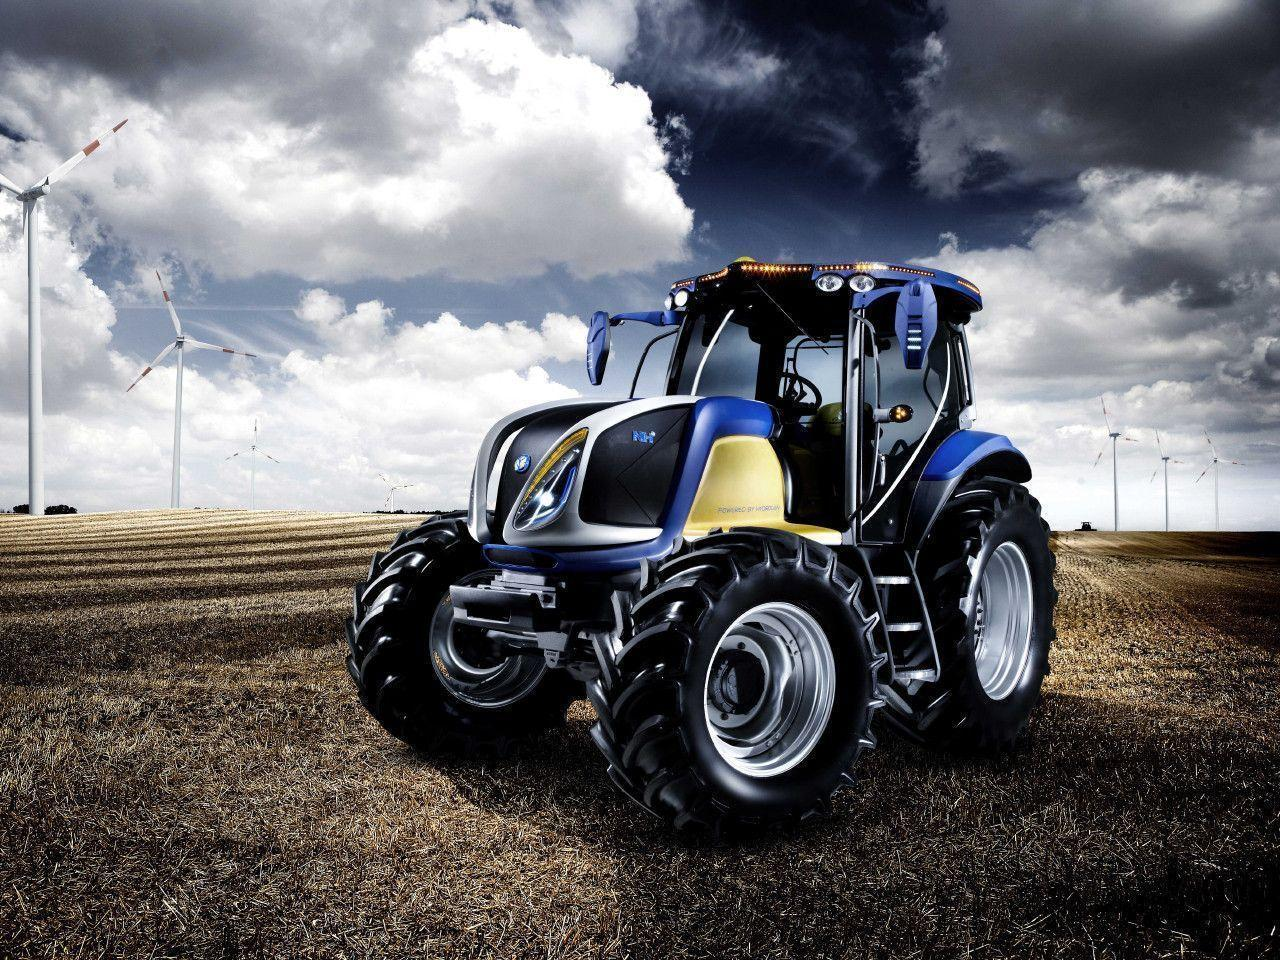 5 New Holland Tractor Wallpapers